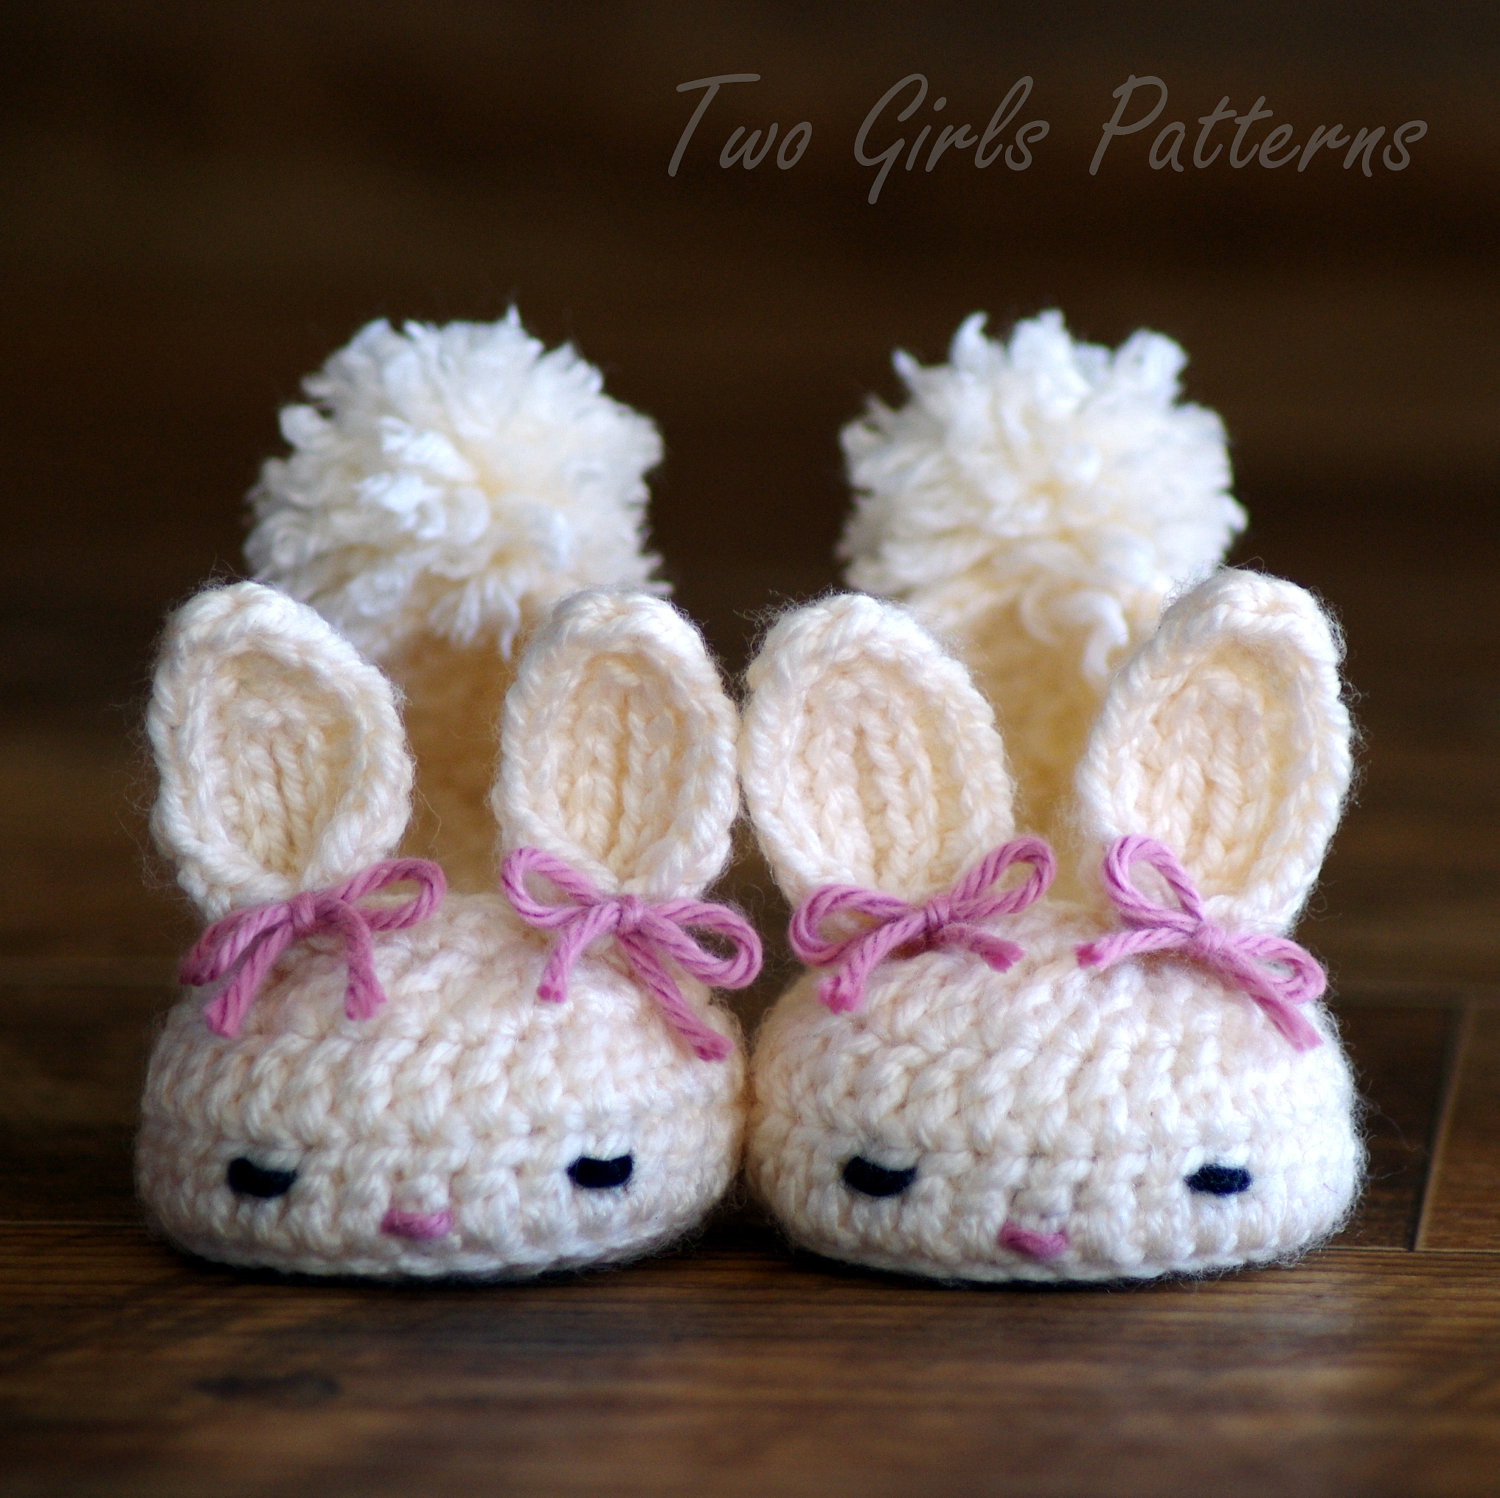 New Crochet Patterns Baby Booties Bunny Crochet Baby Slippers Of Marvelous 50 Images Crochet Baby Slippers